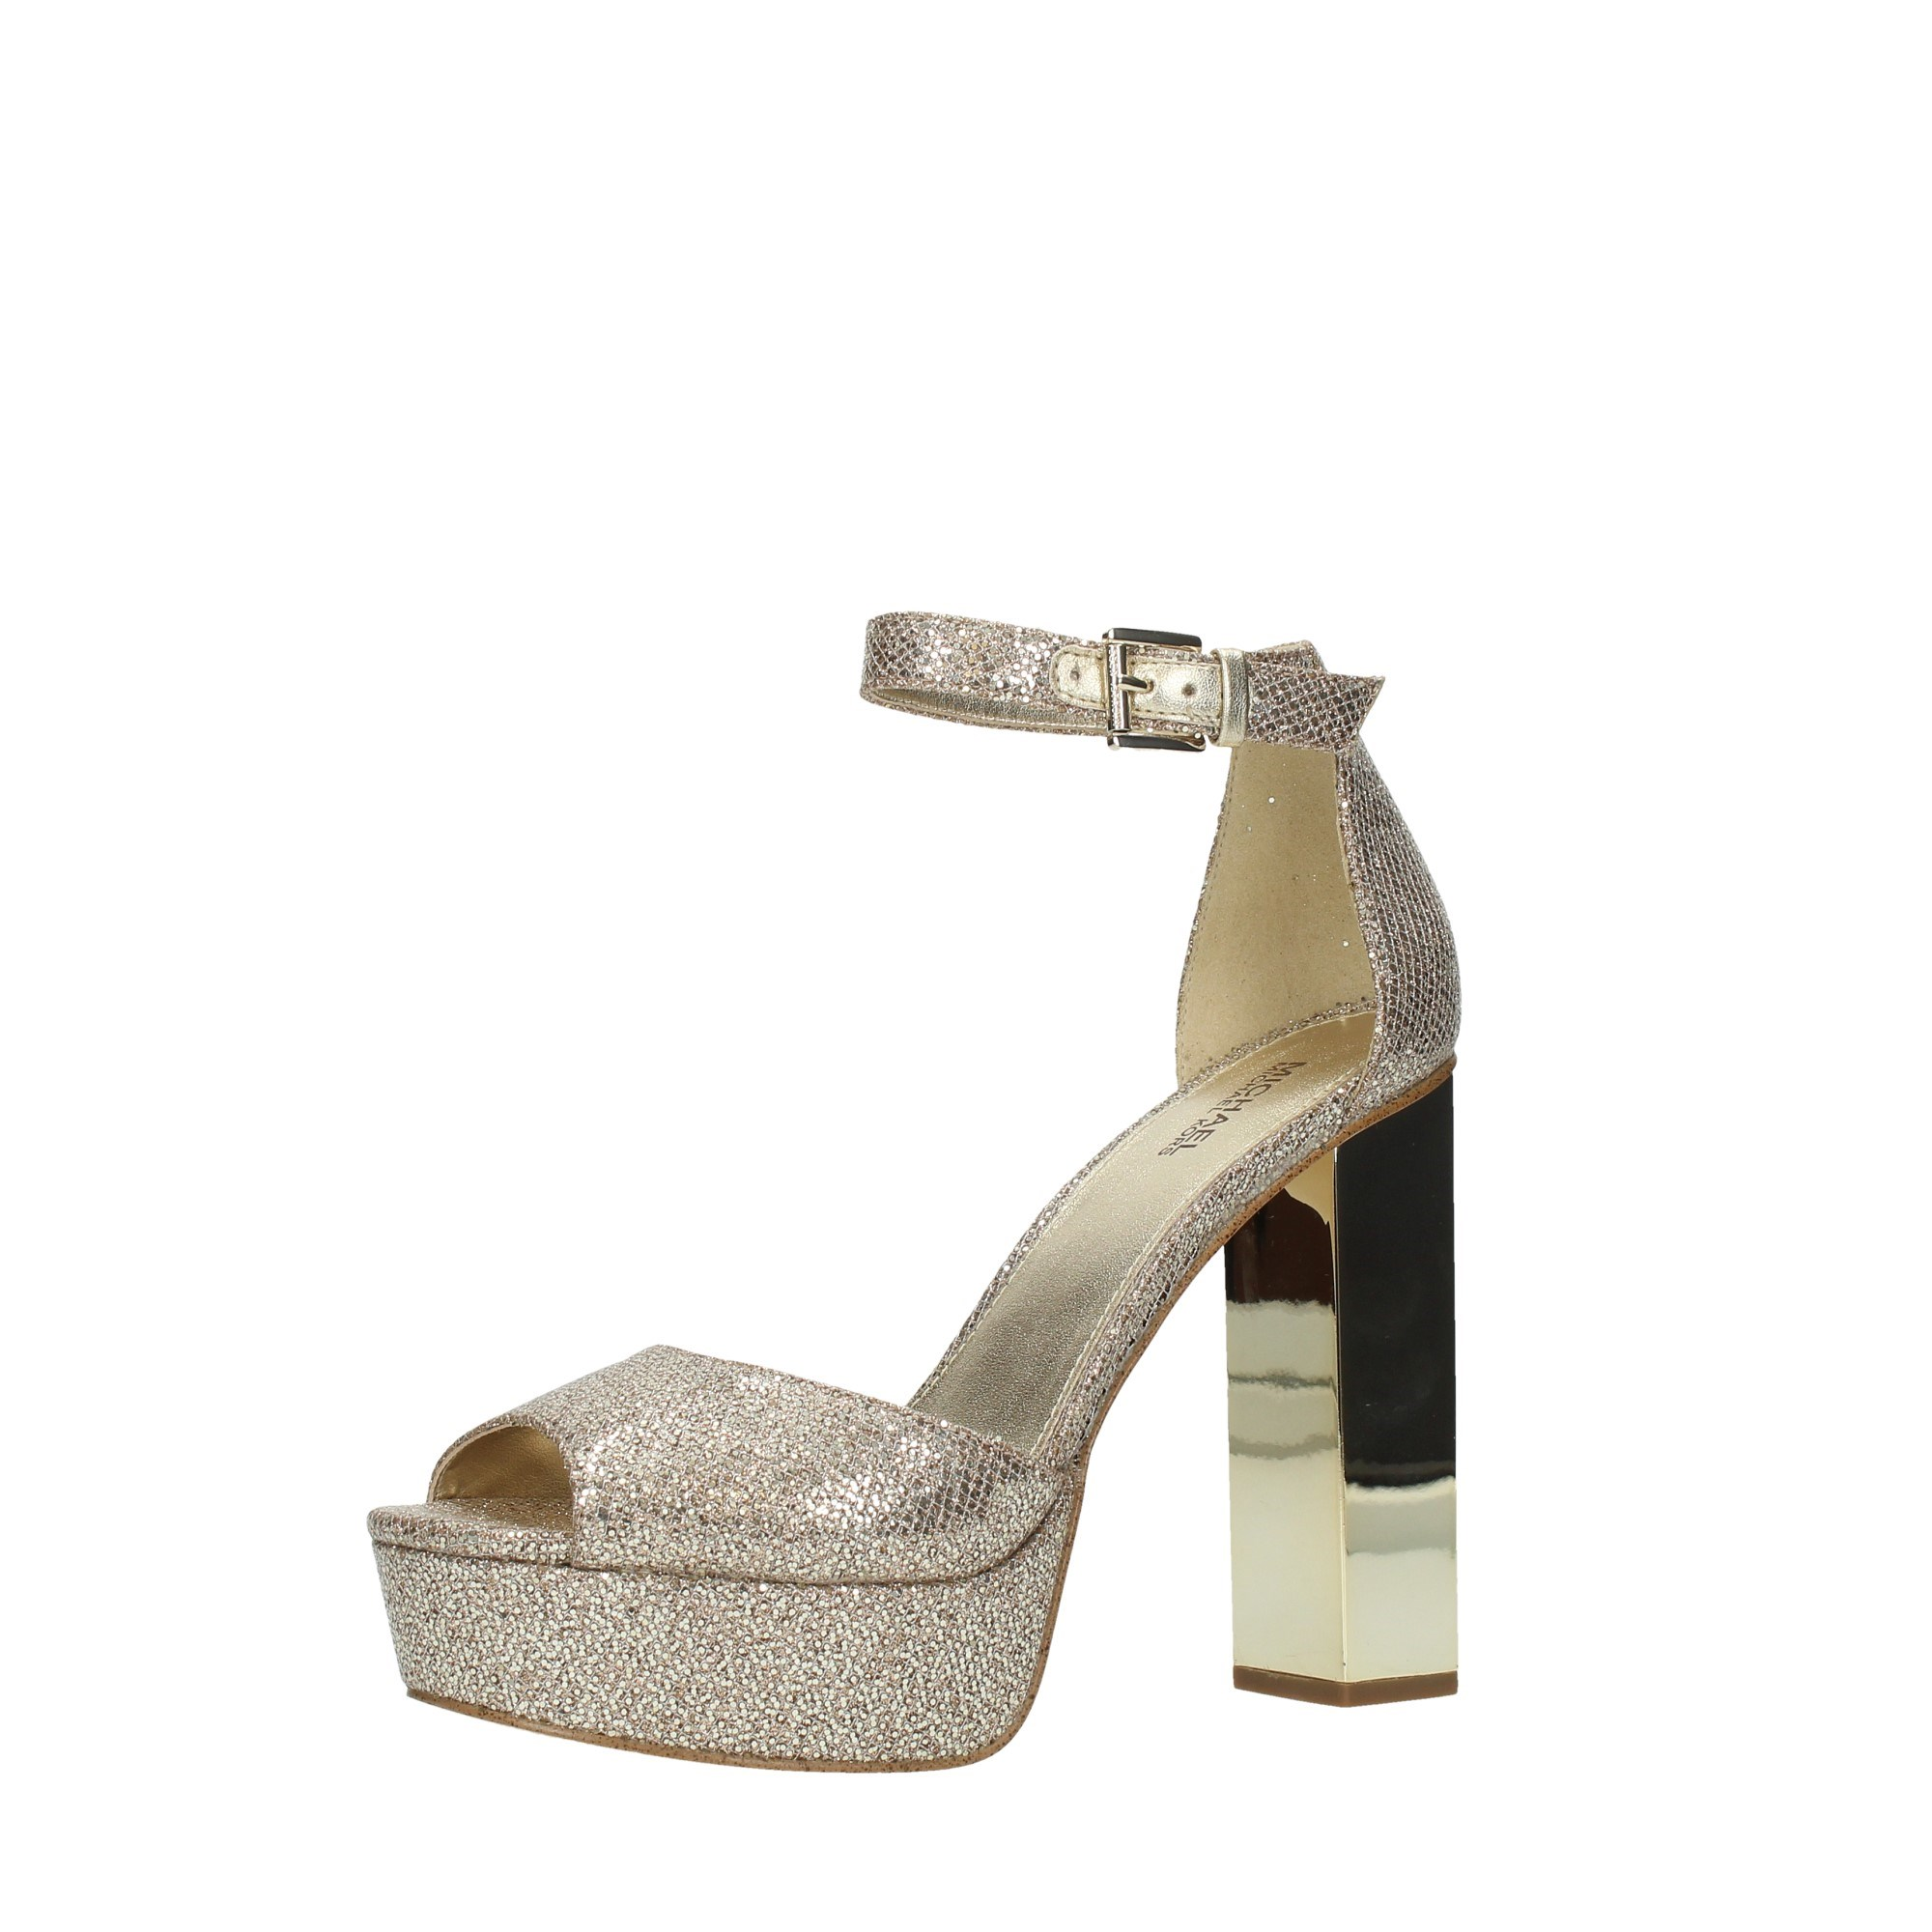 Michael Kors Shoes Women Sandals Beige 40R0PEHS1D